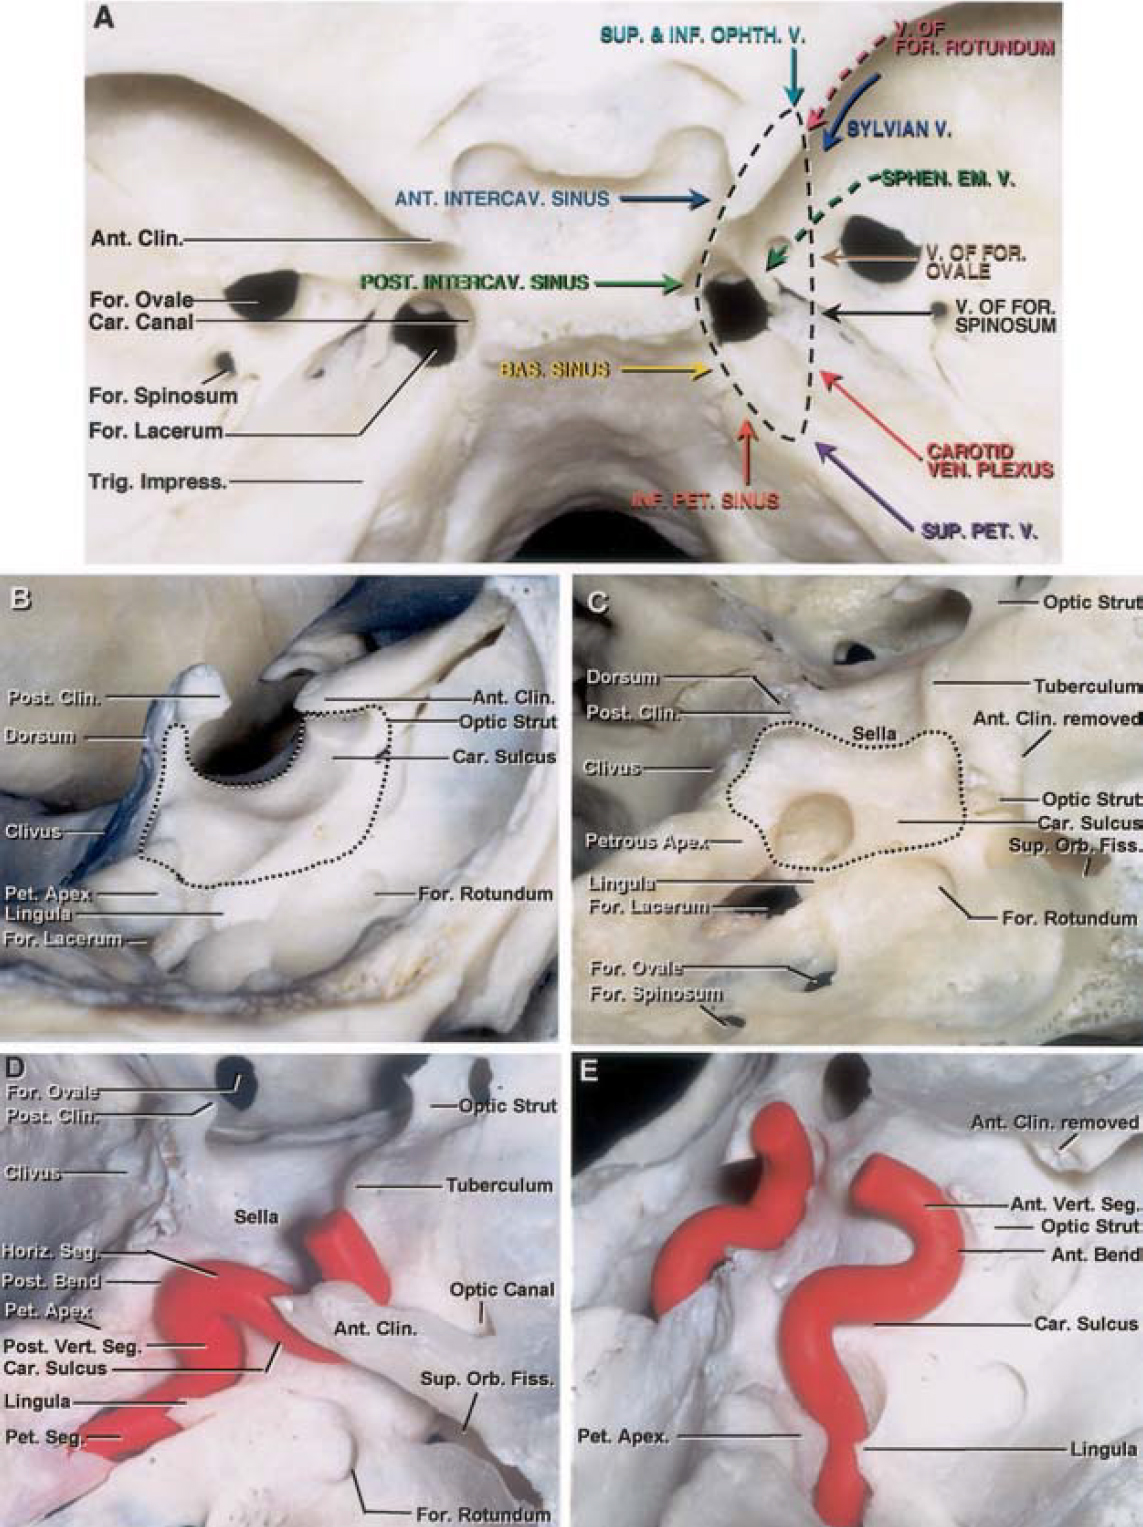 Figure 1 (A  –E  ).  Photographs illustrating the osseous relation-ships of the cavernous sinus. A, superior view of the cranial base in the region of the cavernous sinus showing the cavernous sinus extending from the superior orbital fissure anteriorly to the petrous apex posteriorly; it is bordered by the sella medially and the middle fossa laterally. It fills the posterior margin of the superior orbital fissure, which is located below the anterior clinoid process. Its posterior wall extends from the lateral edge of the dorsum sellae to the medial margin of the trigeminal impression and Meckel's cave. Numerous venous channels open into the cavernous sinus. These include the basilar sinus, the anterior and posterior intercavernous sinuses, the superior and inferior petrosal sinuses, the sylvian and ophthalmic veins, and the veins exiting the foramen ovale, rotundum, and spinosum, the carotid canal, and the sphenoidal emissary foramen. Each venous structure is shown by colored arrows. The basilar sinus is the largest communicating channel between the cavernous sinuses. B, lateral view showing the cavernous sinus resting on the body of the sphenoid bone and adjacent petrous apex (broken lines). The lower edge of the posterior limit of the cavernous sinus sits on the junction of the petrous apex and the body of the sphenoid bone at the upper end of the petroclival fissure. The lower edge extends for-ward along the superior edge of the lingula of the sphenoid bone and the lateral part of the sphenoid body to just above the foramen rotundum. The anterior edge extends along the posterior edge of the optic strut and the medial edge of the superior orbital fissure. The upper limit of the sphenoid bone extends along the superior margin of the carotid sulcus and ends posteriorly at the posterior clinoid process. The dorsum sellae is located between the paired posterior clinoid processes. C, view showing the anterior clinoid process removed. The osseous limits of the cavernous sinus have been outlined. The tuberculum sellae is located at the posterior edge of the chiasmatic sulcus between the anterior part of the paired carotid sulci and posteromedial to the optic canals. The lingula of the sphenoid bone projects posteriorly above the intracranial end of the carotid canal and foramen lacerum and covers the terminal part of the petrous segment of the internal carotid artery. The petrolingual ligament extends from the lingula to the petrous apex. D, superolateral view of the region of the cavernous sinus showing the segments of the internal carotid artery. The intracavernous carotid artery has five parts: the posterior vertical segment, posterior bend, horizontal segment, anterior bend, and anterior vertical segment. The anterior bend and anterior vertical segments course medial to the anterior clinoid process. E, view showing the anterior clinoid process moved to expose the anterior bend and anterior vertical segment of the intracavernous carotid. A., artery; Ant., anterior; Bas., basilar; Car., carotid; Clin., clinoid; Em., emissary; Fiss., fissure; For., foramen; Horiz., horizontal; Impress., impression; Inf., inferior; Intercav., intercavernous; Mid., middle; Ophth., ophthalmic; Orb., orbital; Pet., petrosal, petrous; Pit., pituitary; Post., posterior; Seg., segment; Sphen., sphenoid, sphenoidal; Sulc., sulcus; Sup., superior; Trig., trigeminal; V., vein; Ven., venous; Vert., vertical. (Images courtesy of AL Rhoton, Jr.)